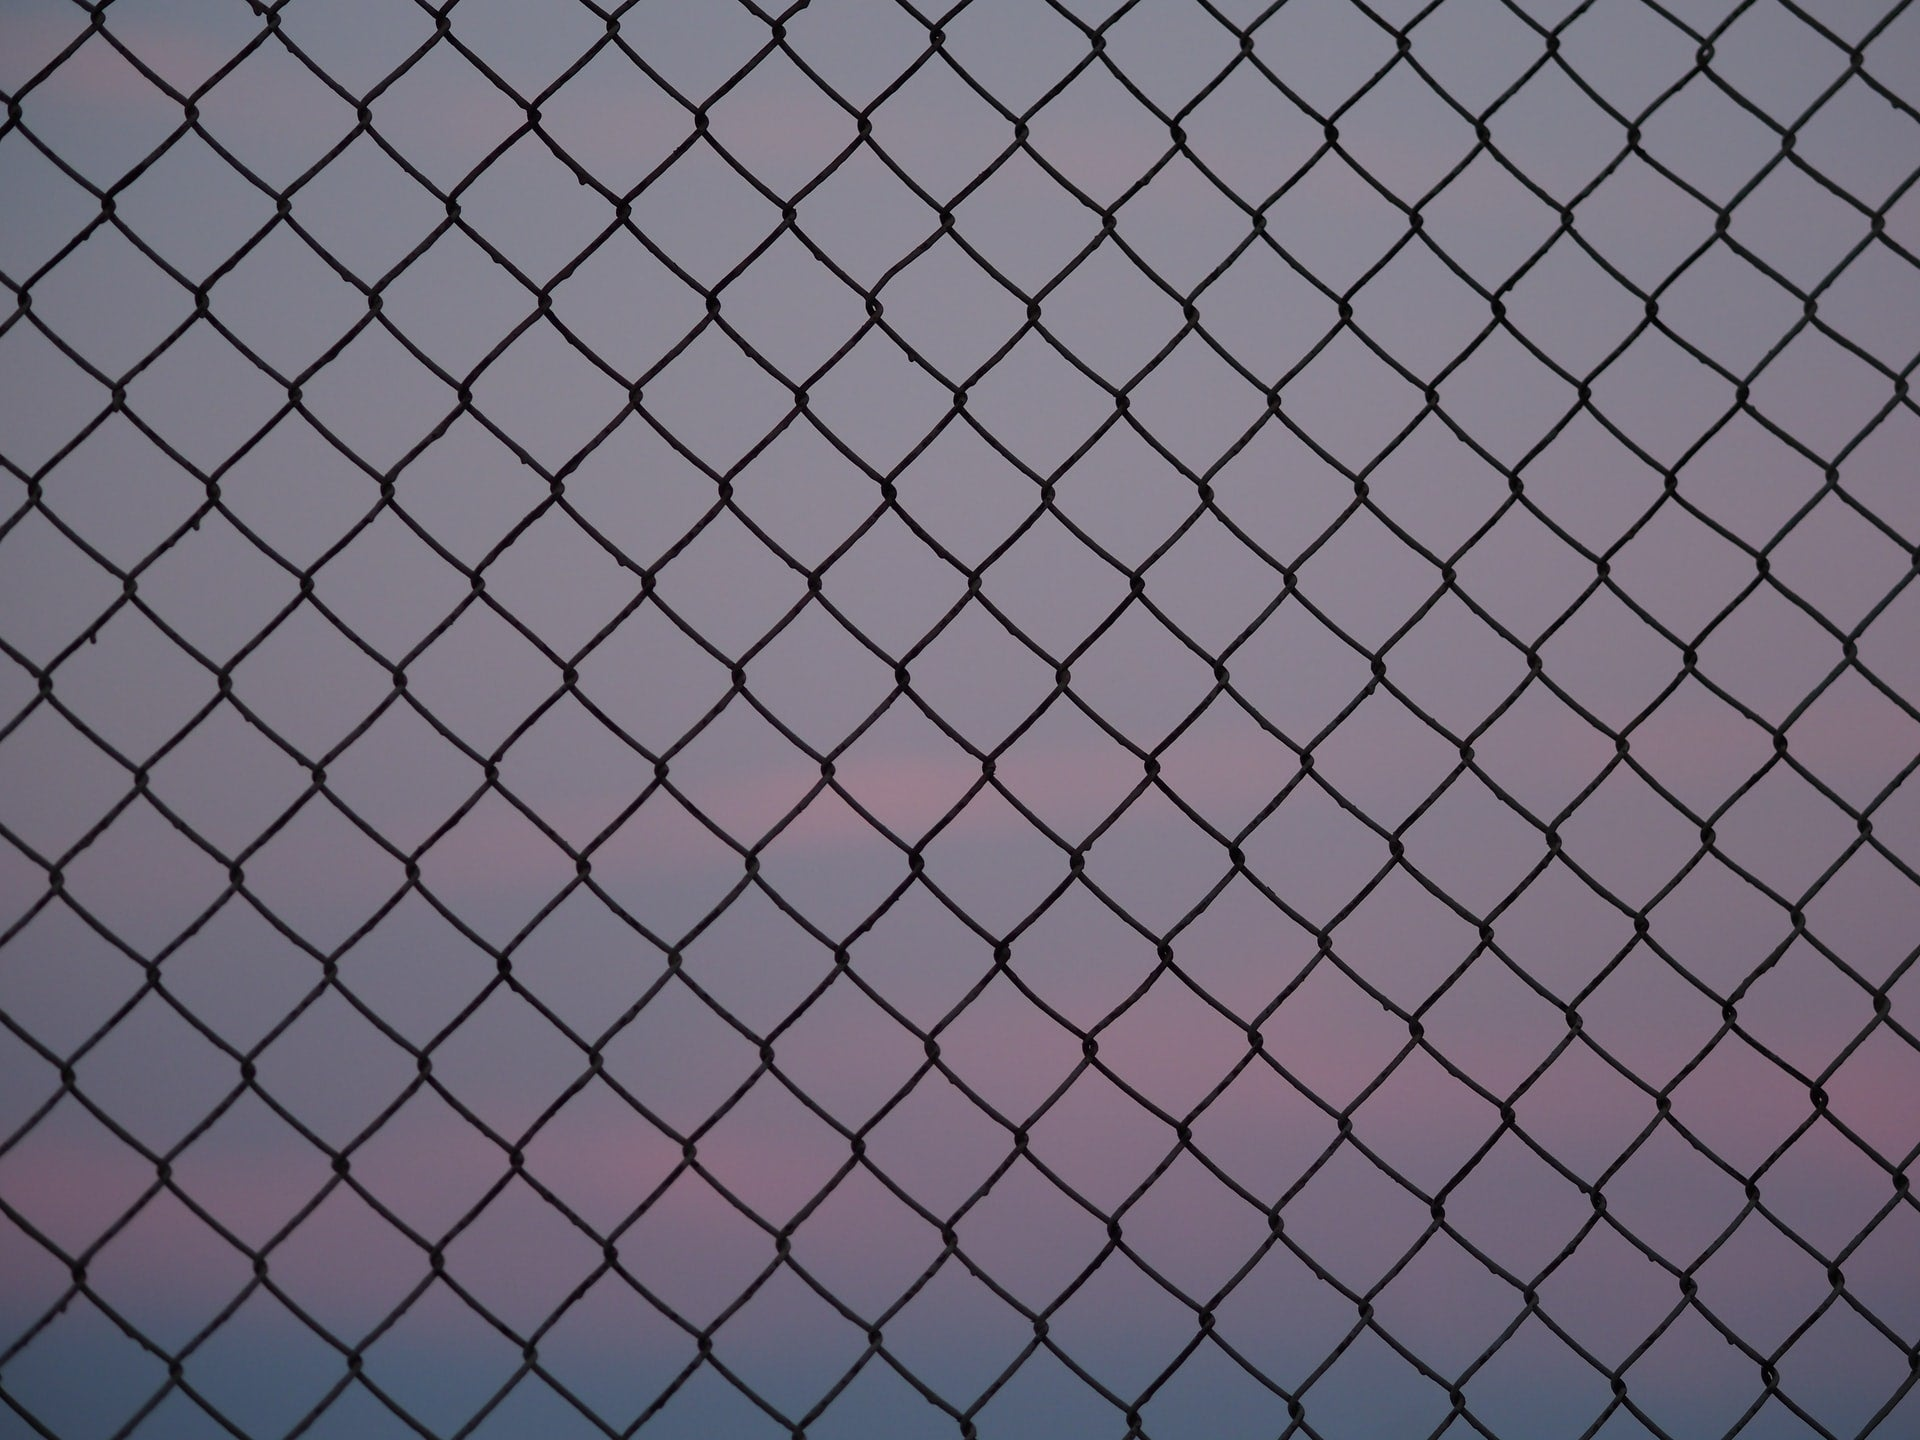 A photo of a wire fence